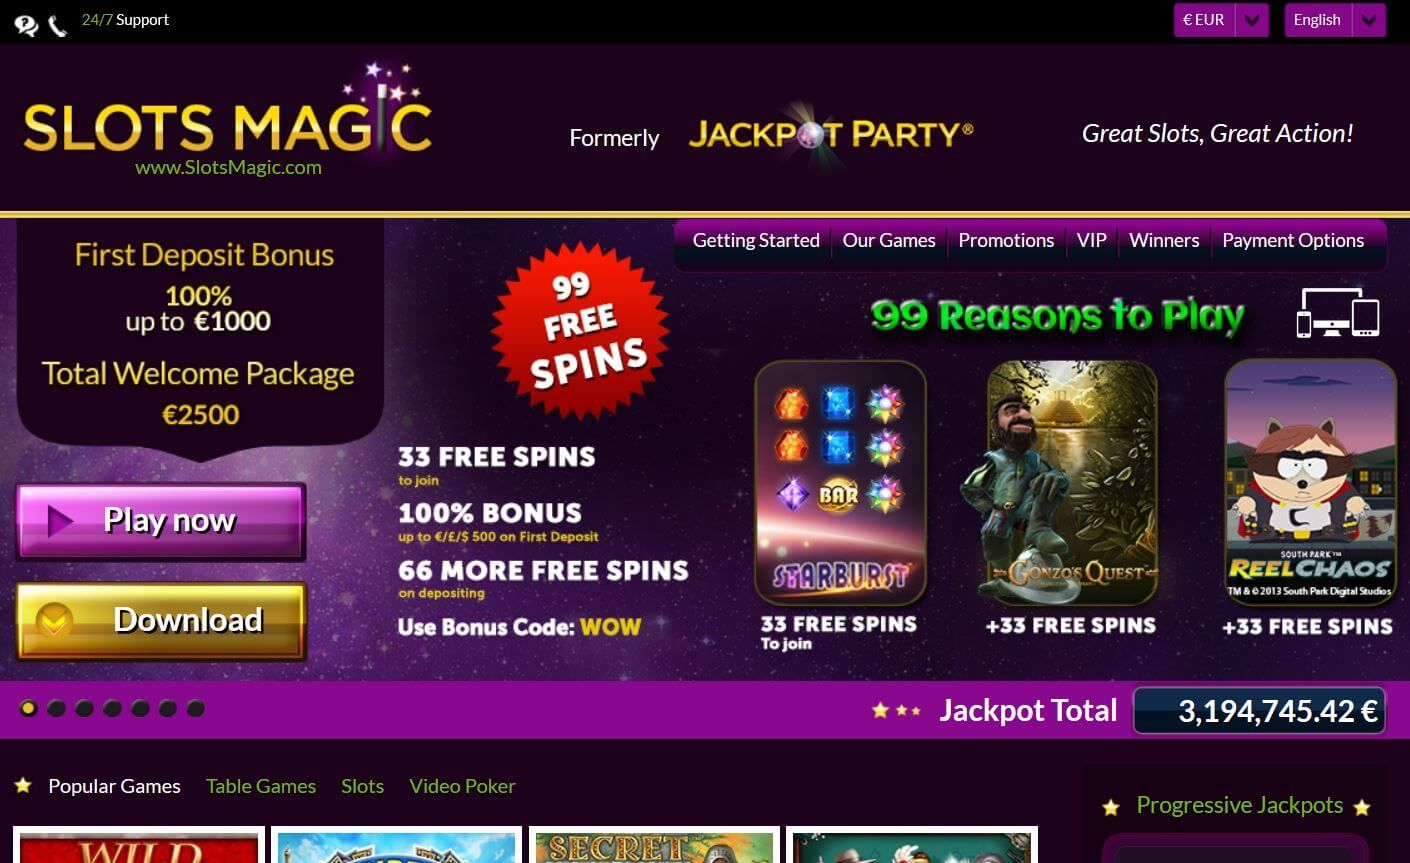 20 No Deposit Free Spins on Wizard of Oz Play slots